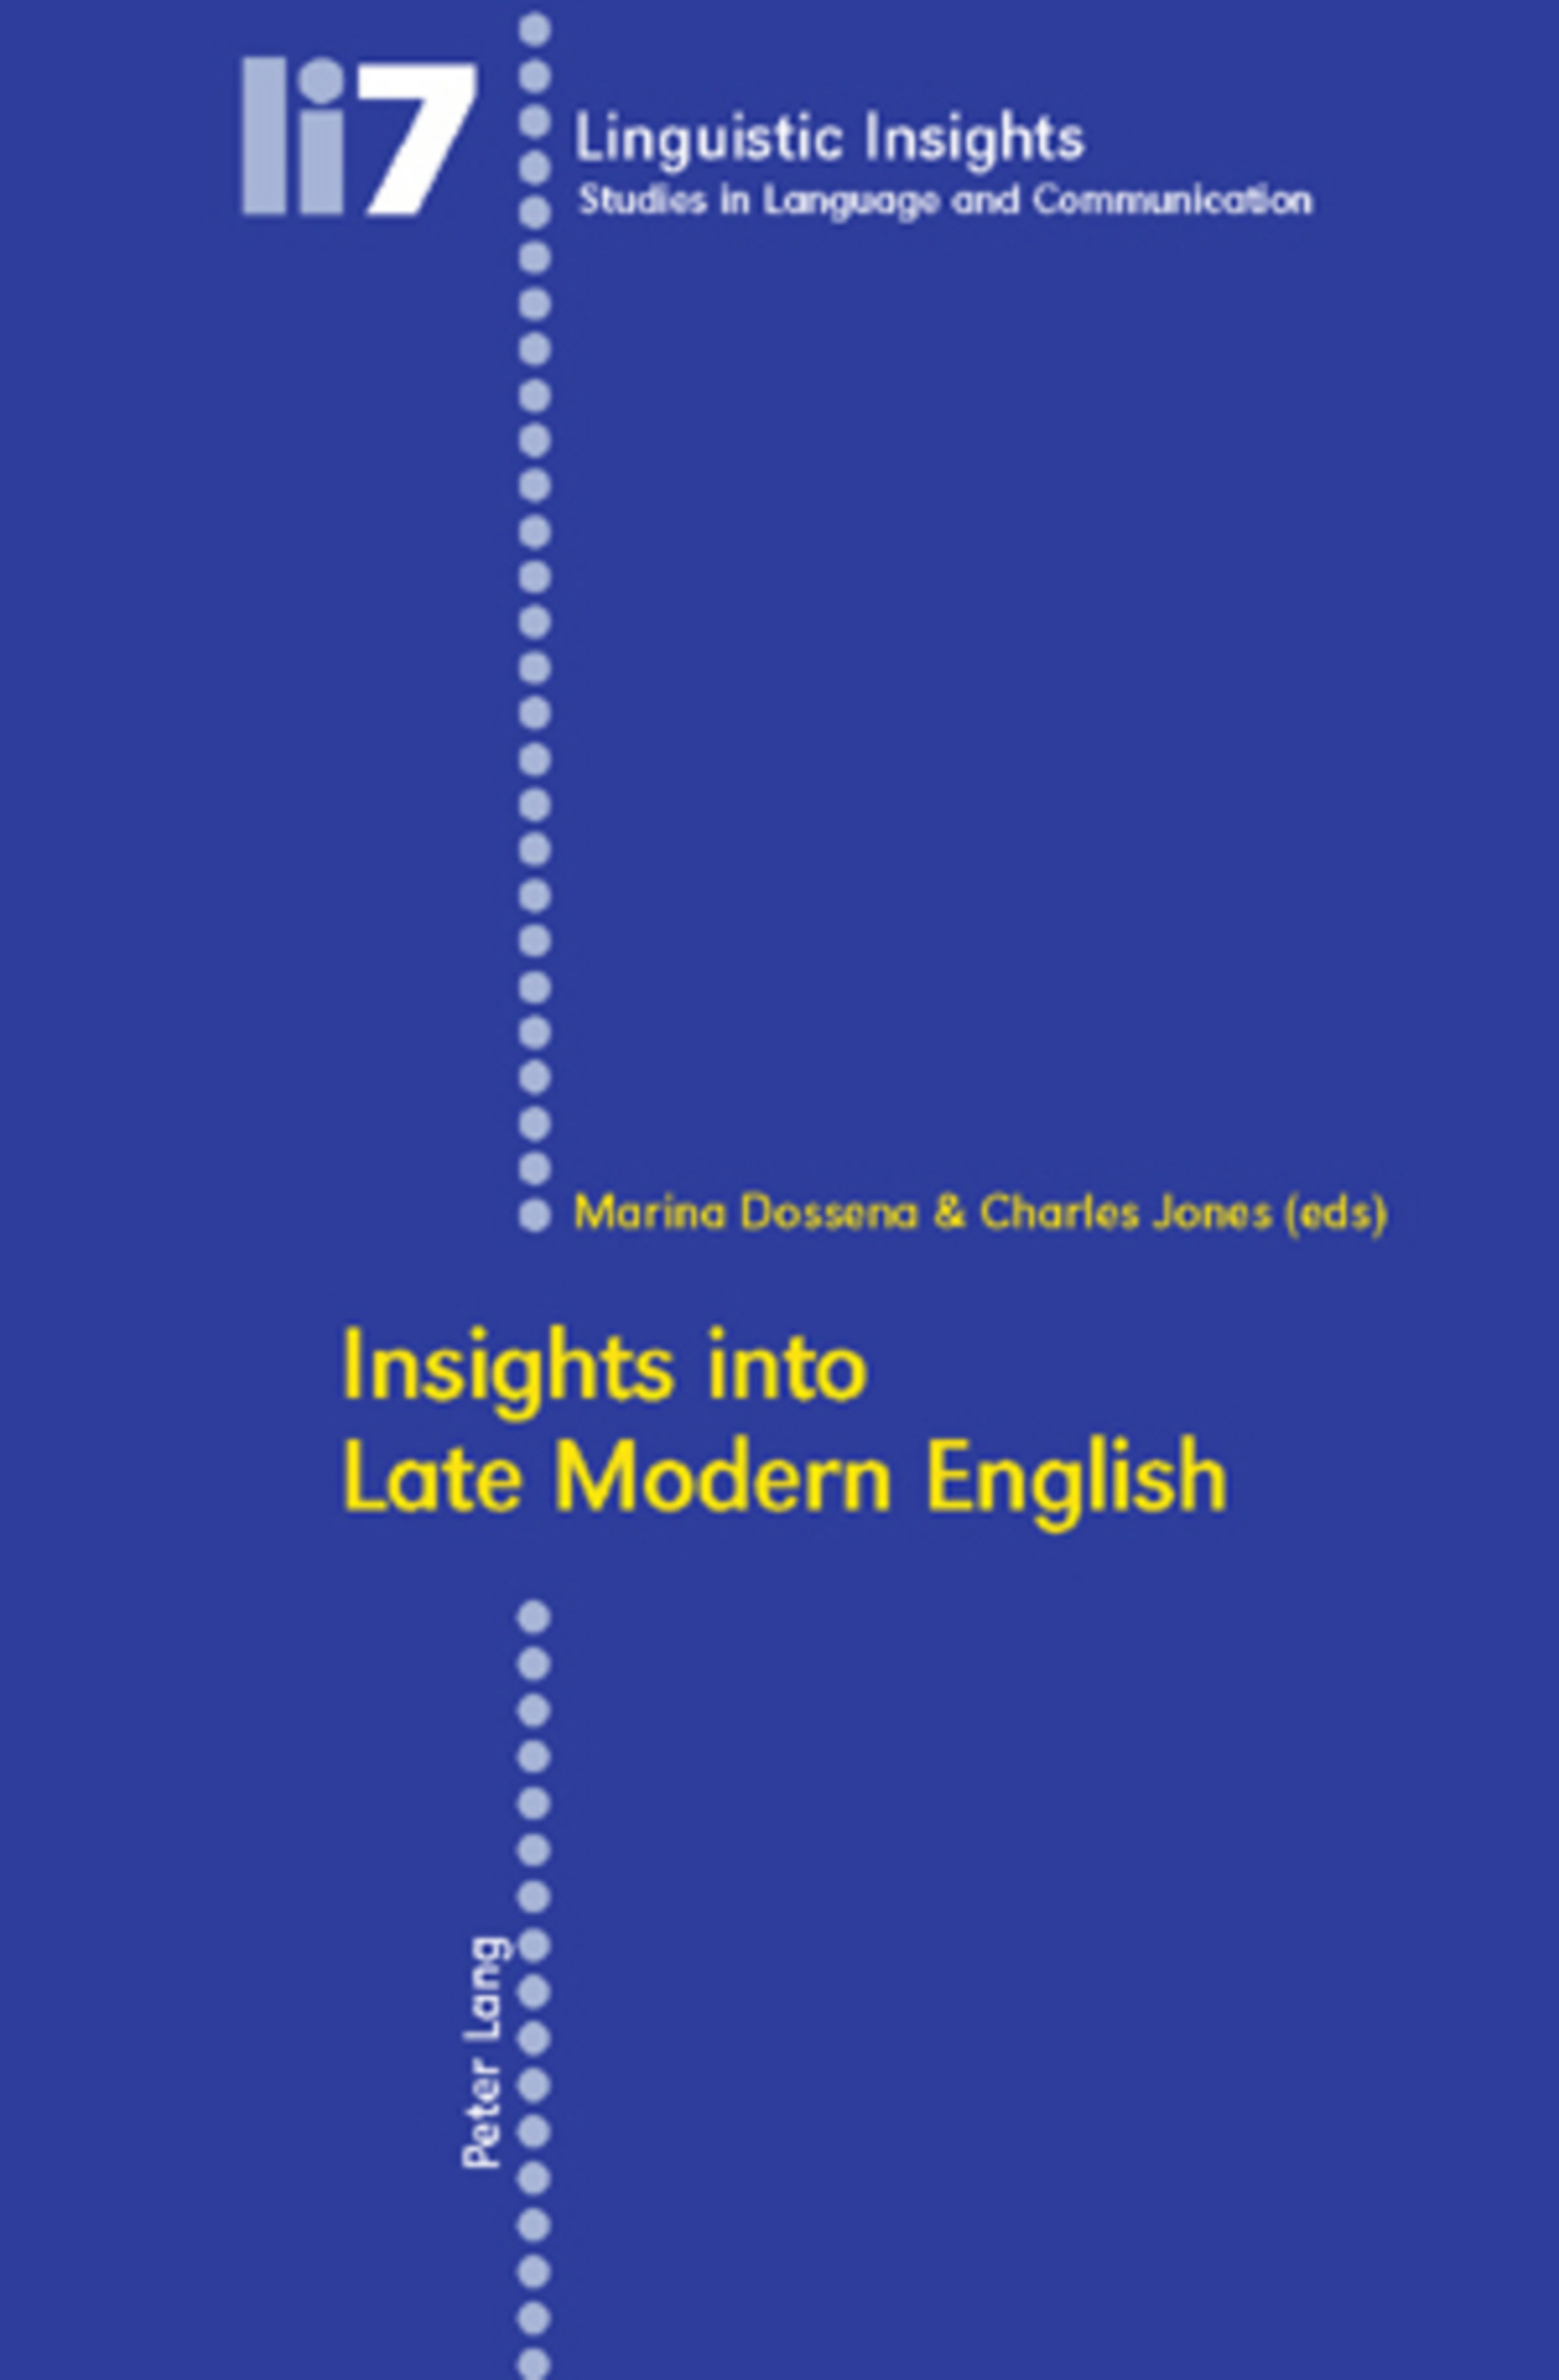 Title: Insights into Late Modern English